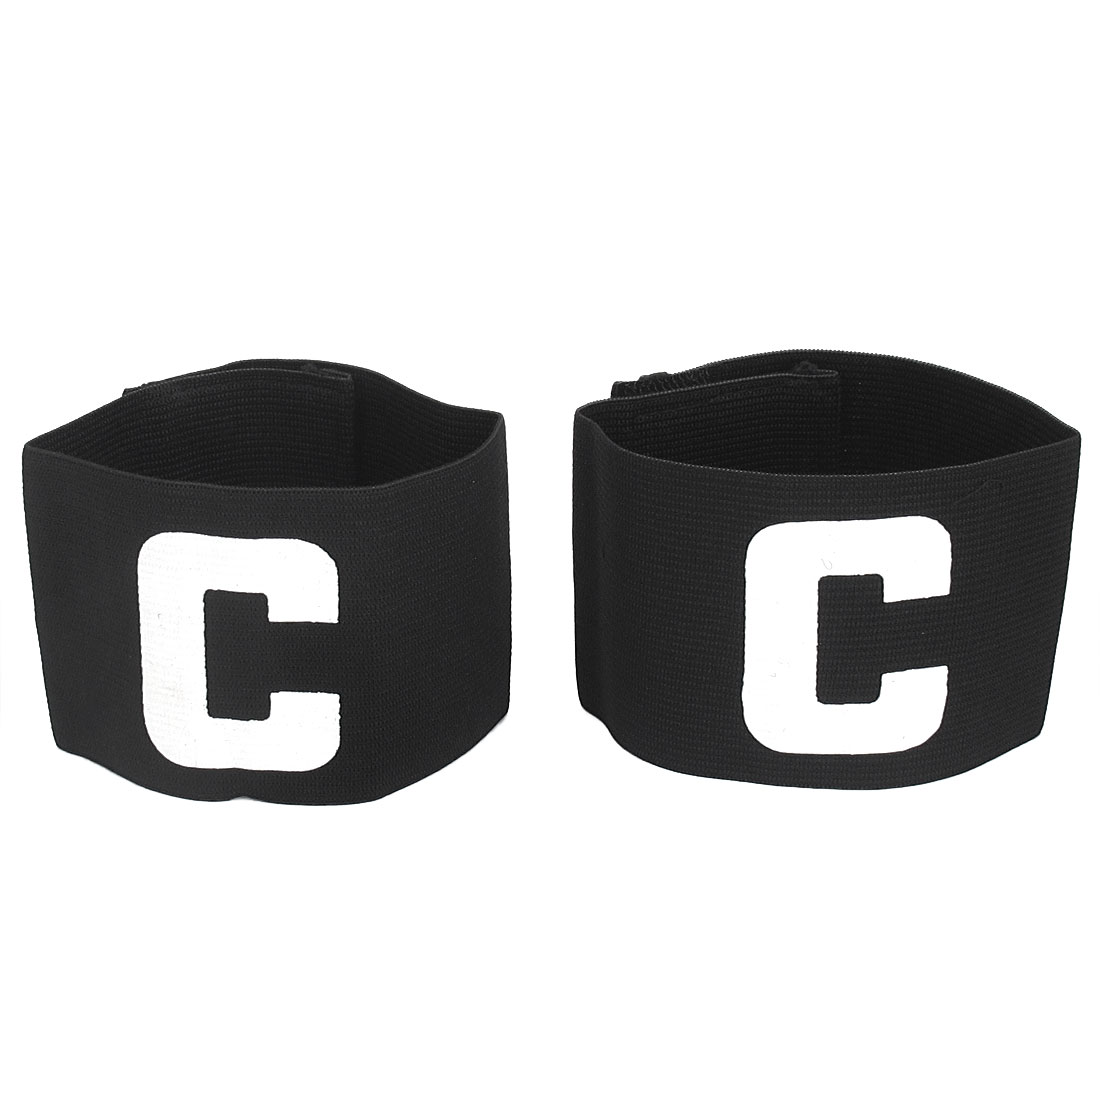 Hook Loop Closure Stretchy Team Football Tension Captain Armband Badge Black 2pcs